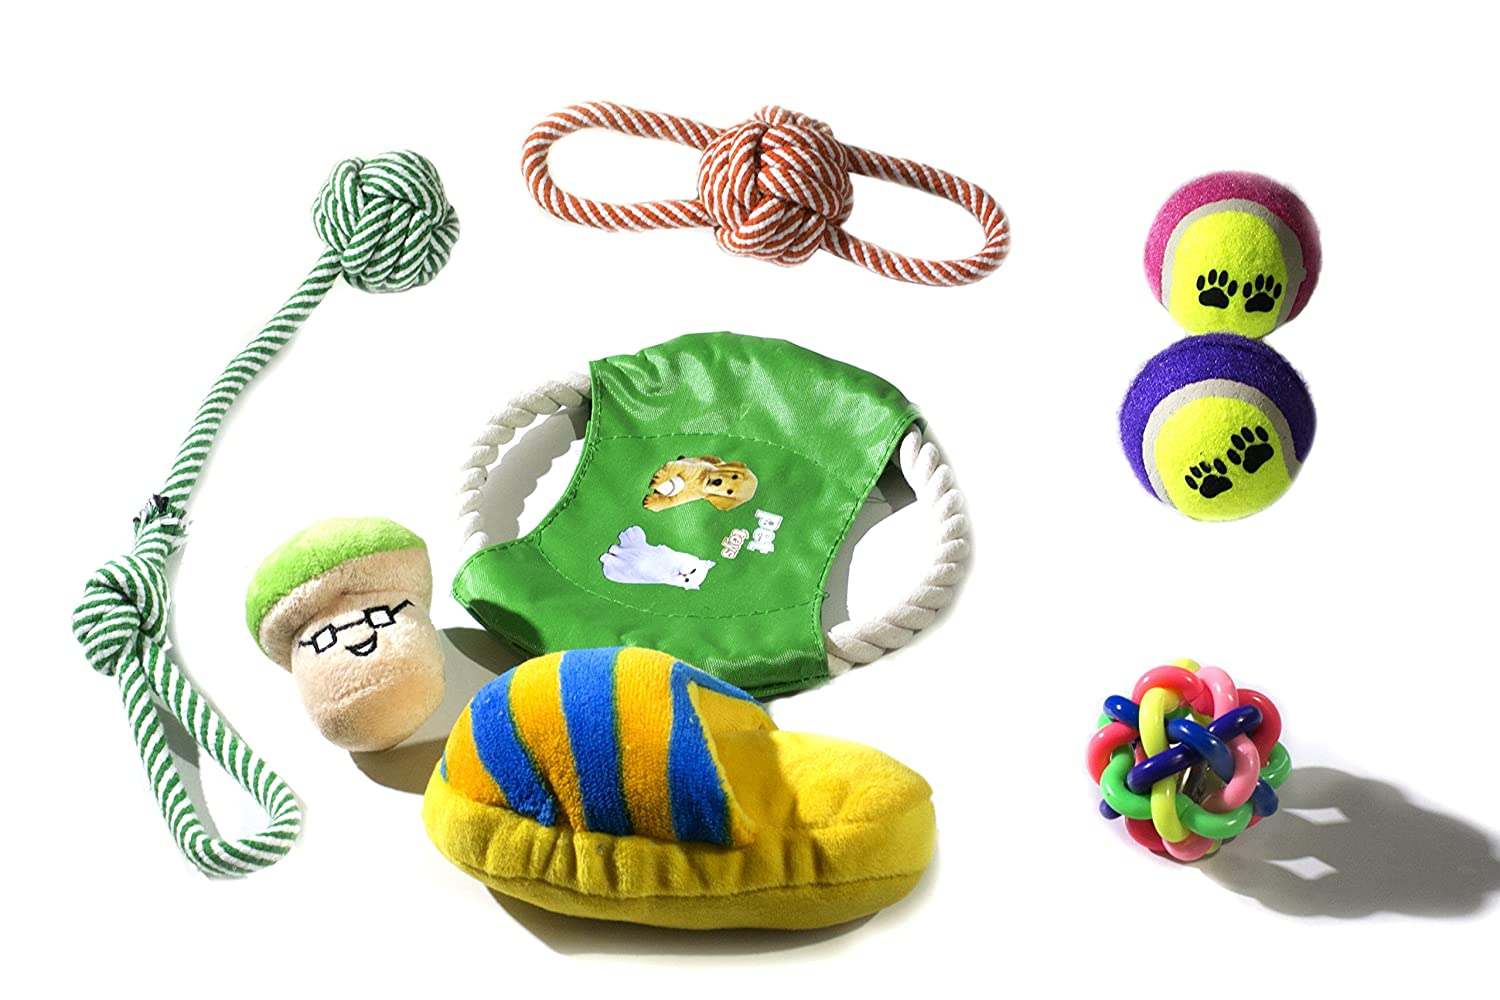 Qualinsis Dog Rope Sets, Dog Tug of War Rope Toys, Dog Chewy Toy Gift Set good